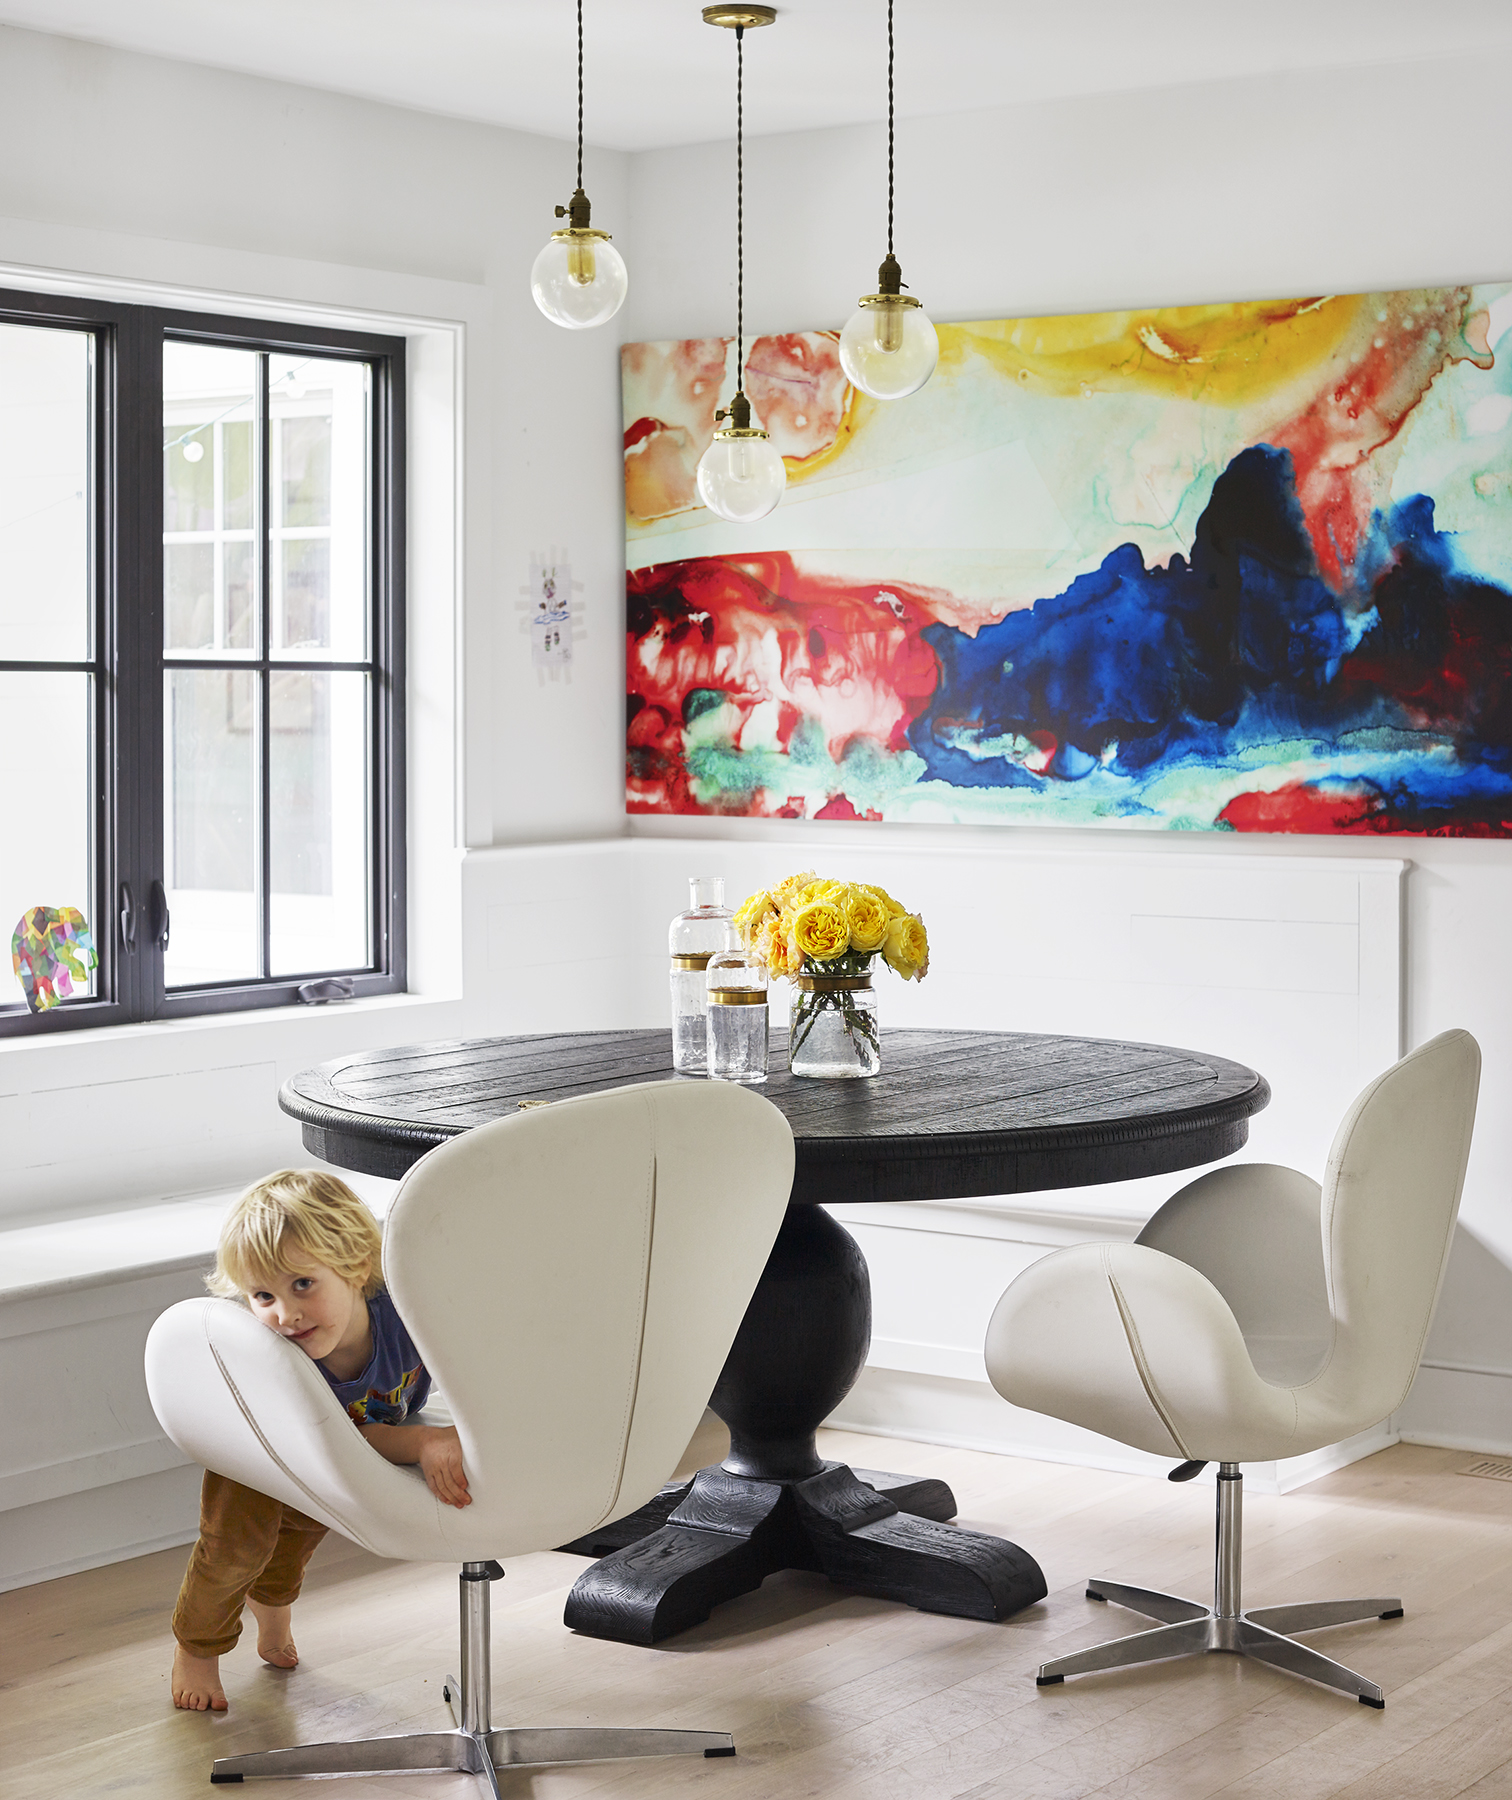 Clone of White dining room with bold colorful painting